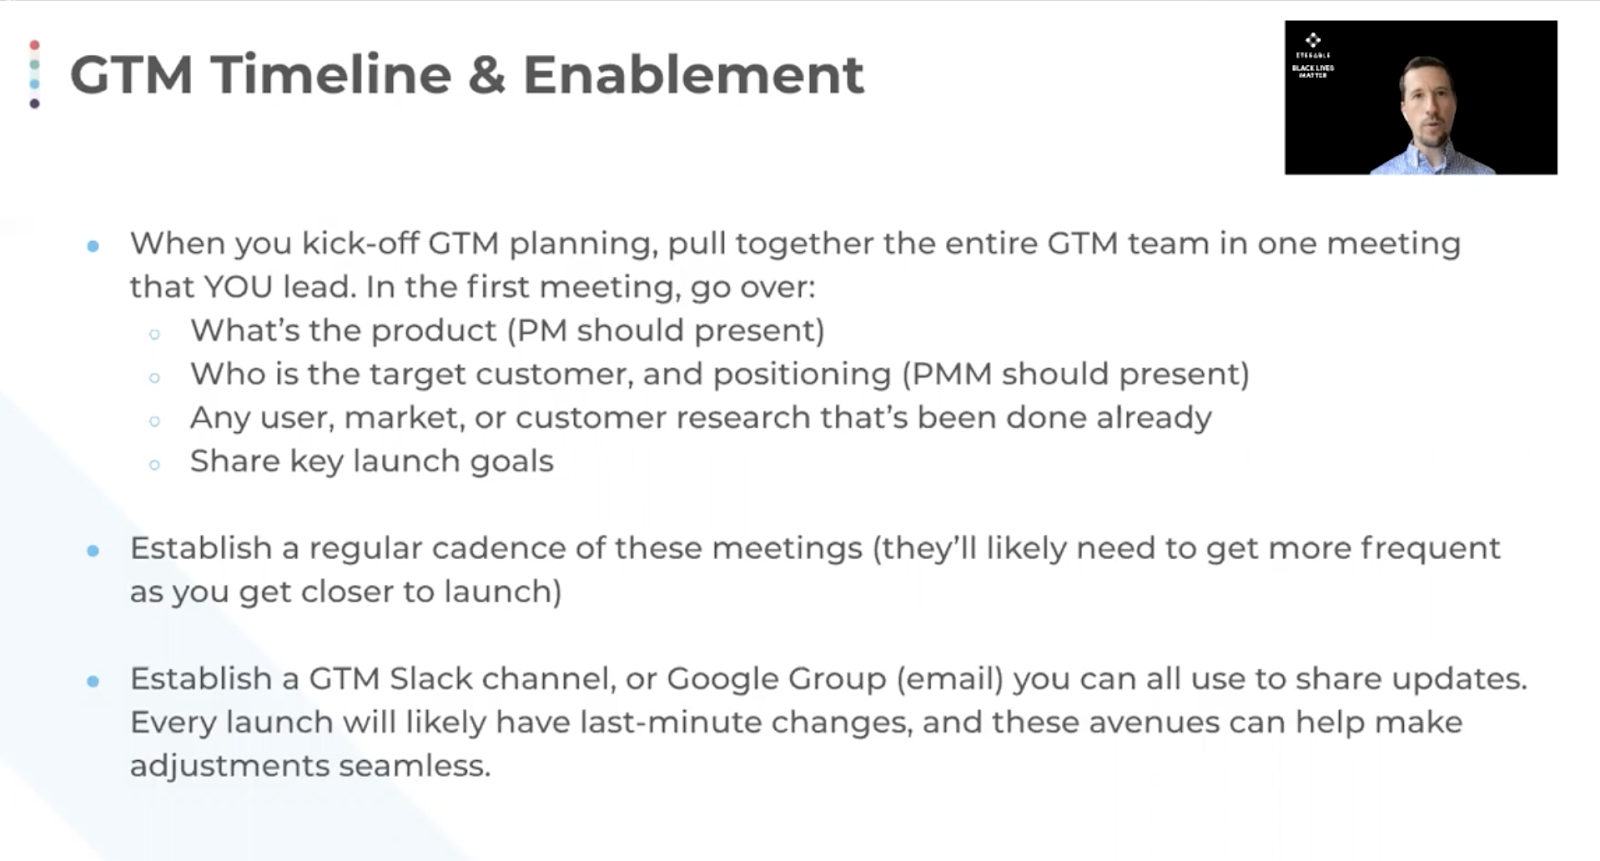 GTM timeline and enablement.